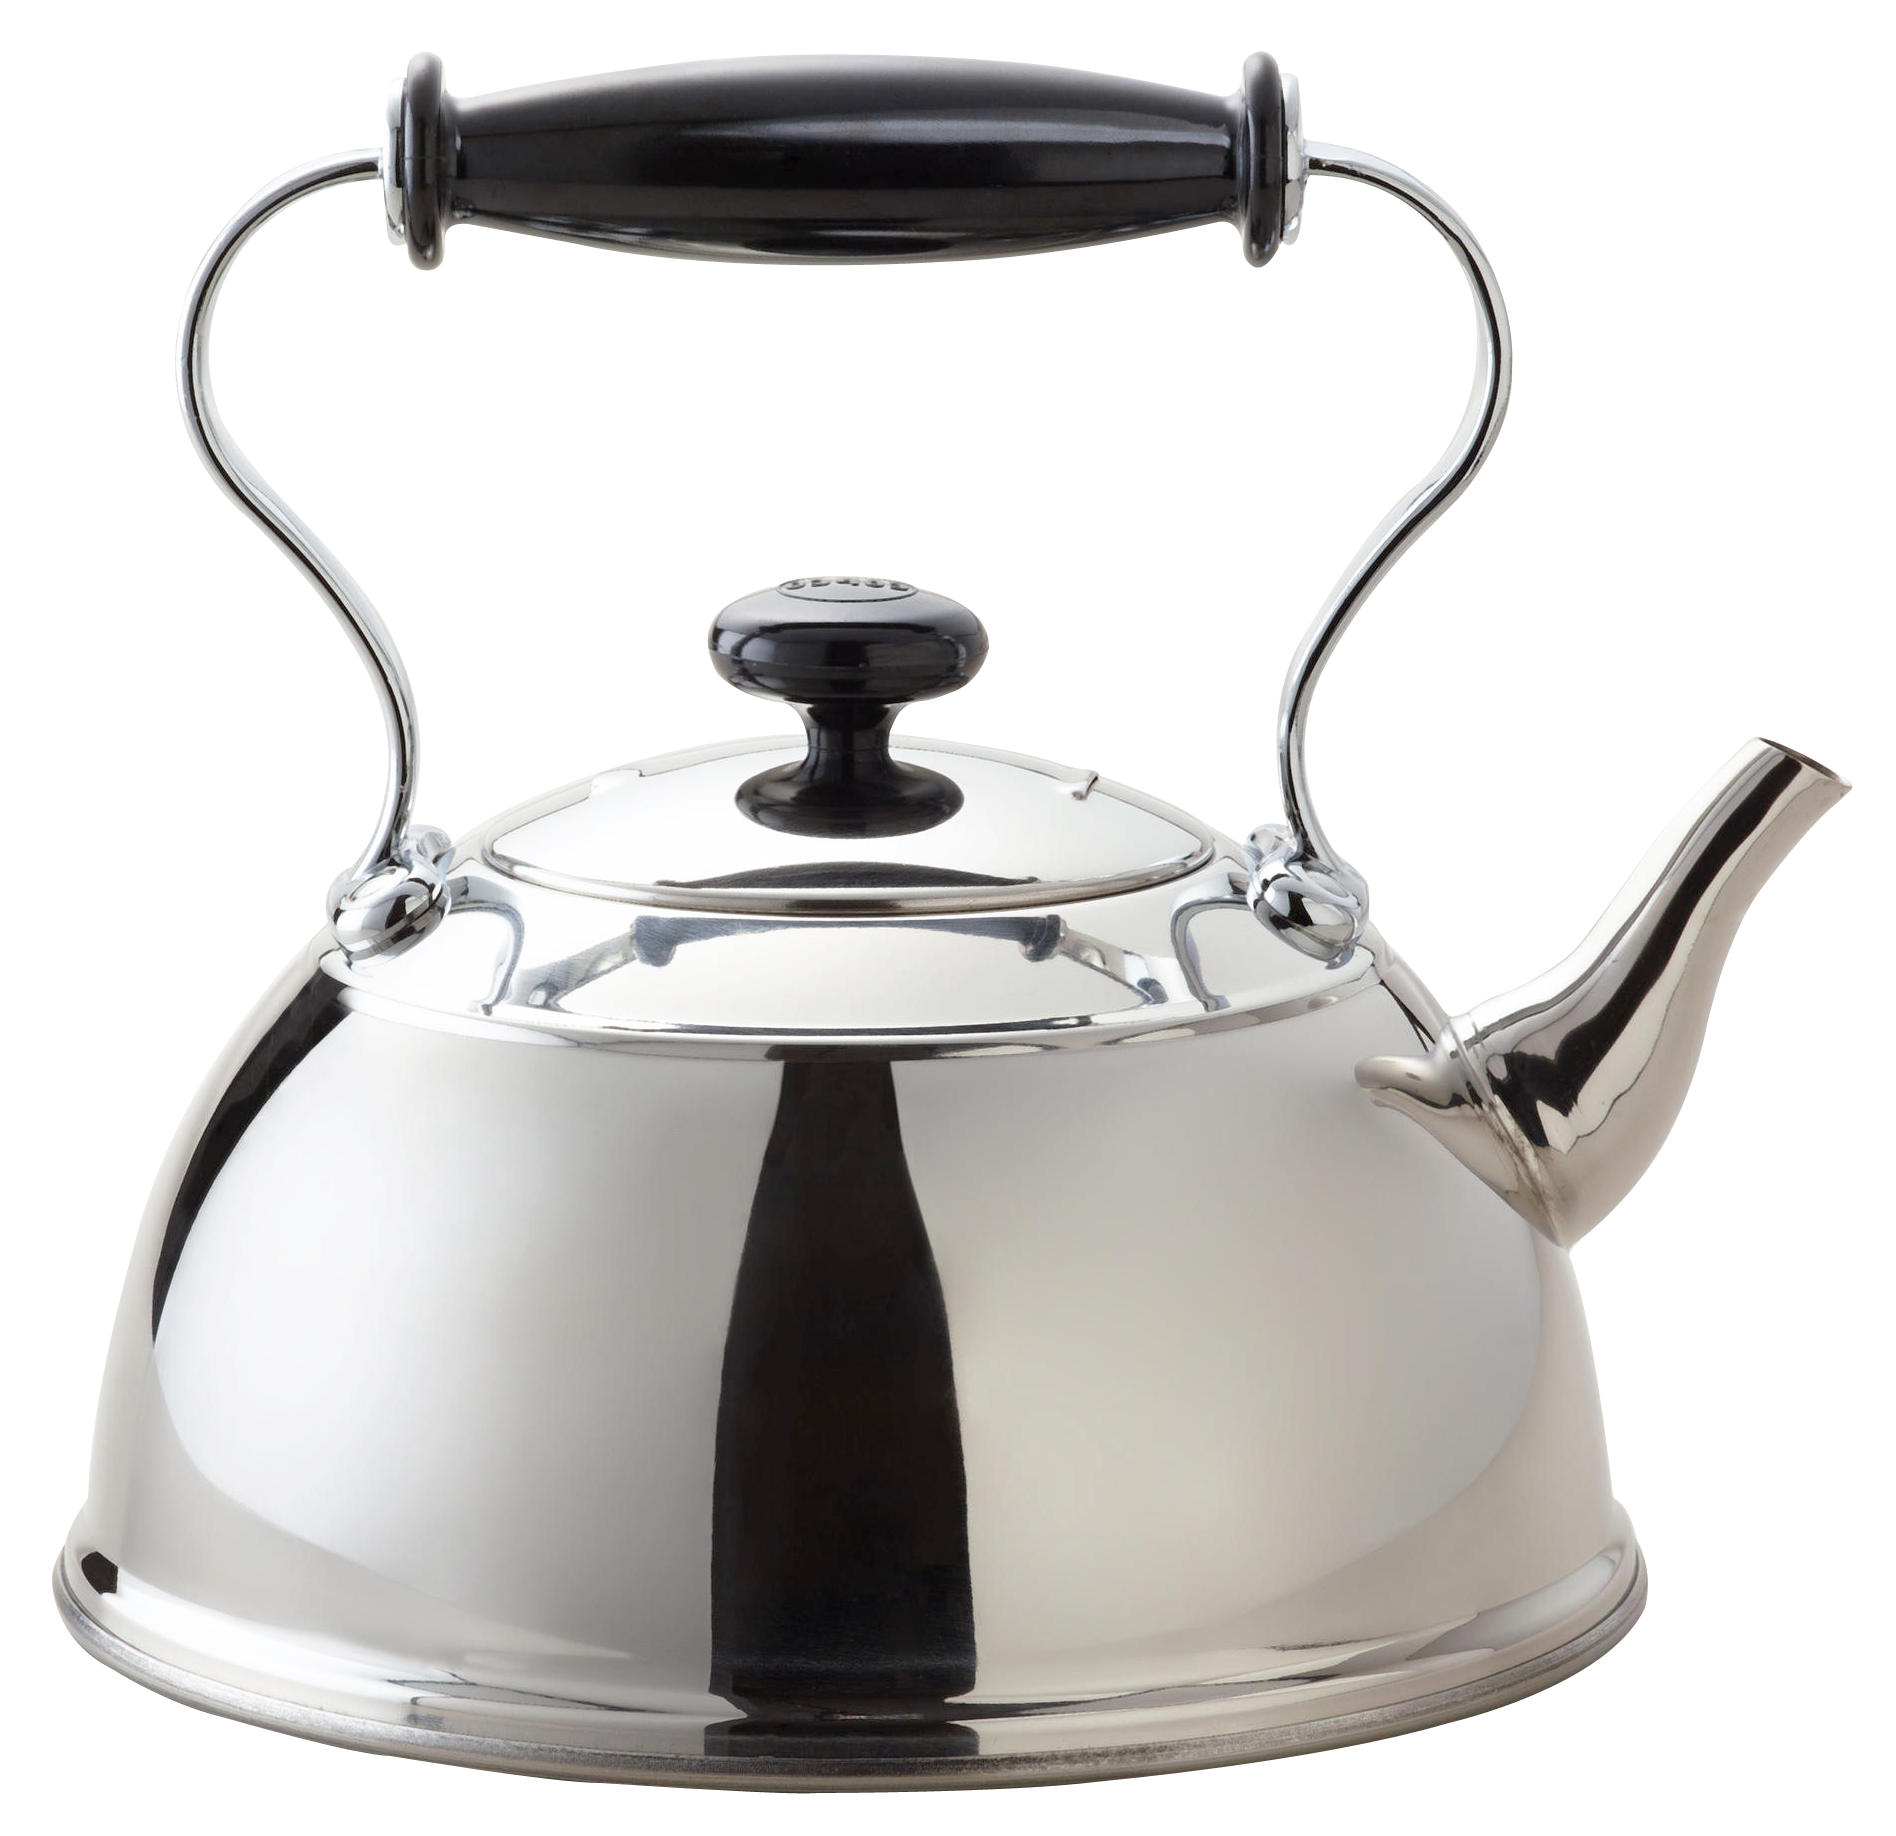 Kettle PNG-PlusPNG.com-1896 - Kettle PNG